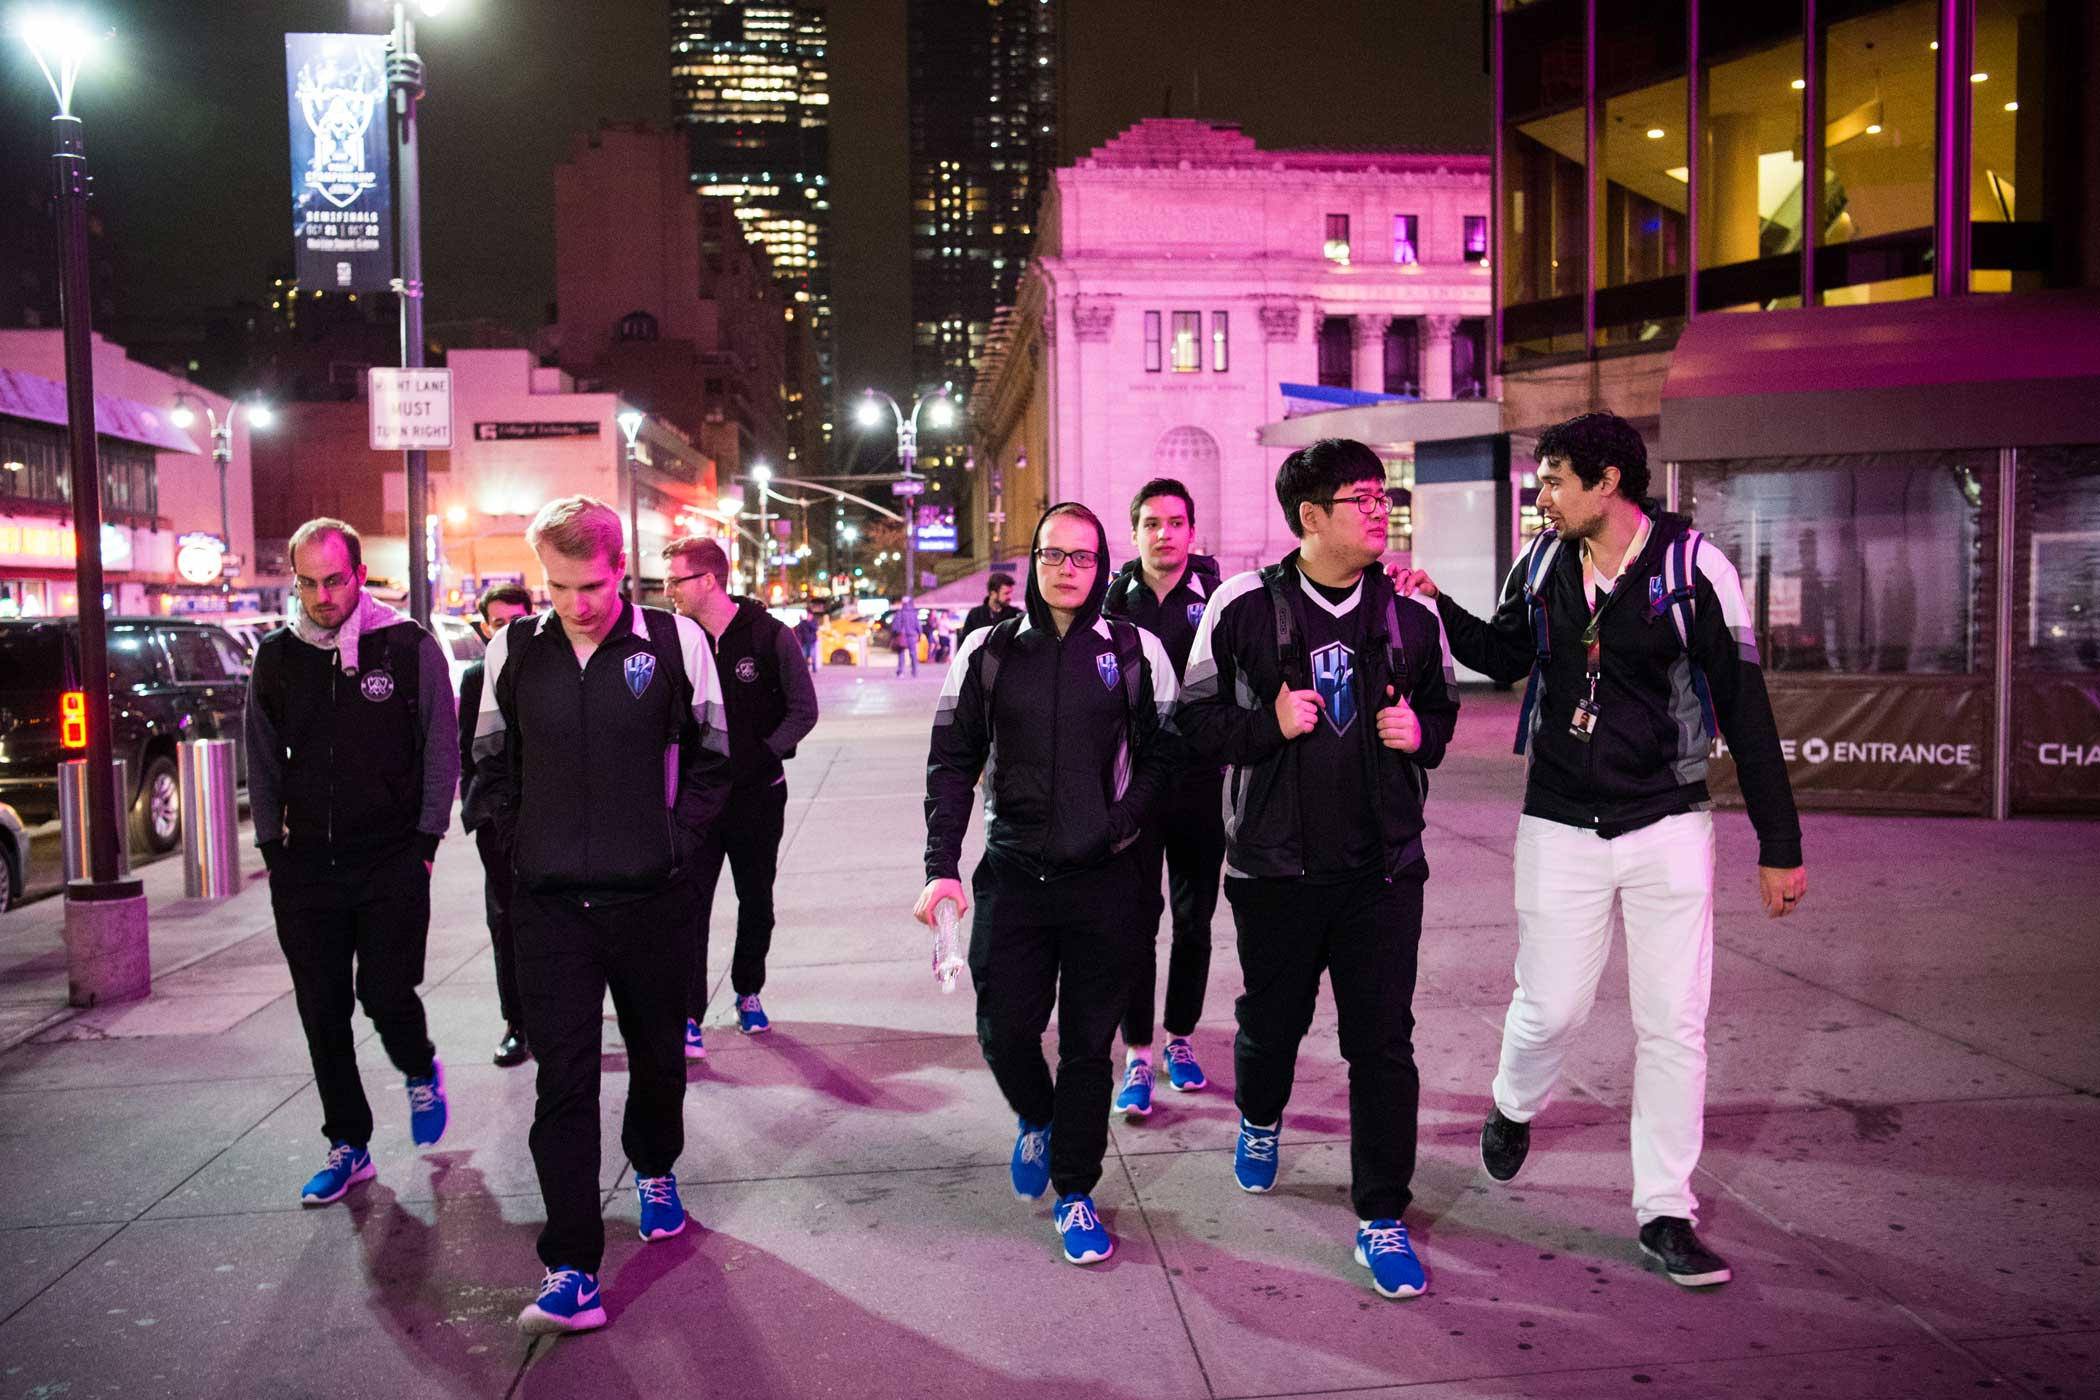 H2k leaves Madison Square Garden after their loss to Samsung Galaxy.